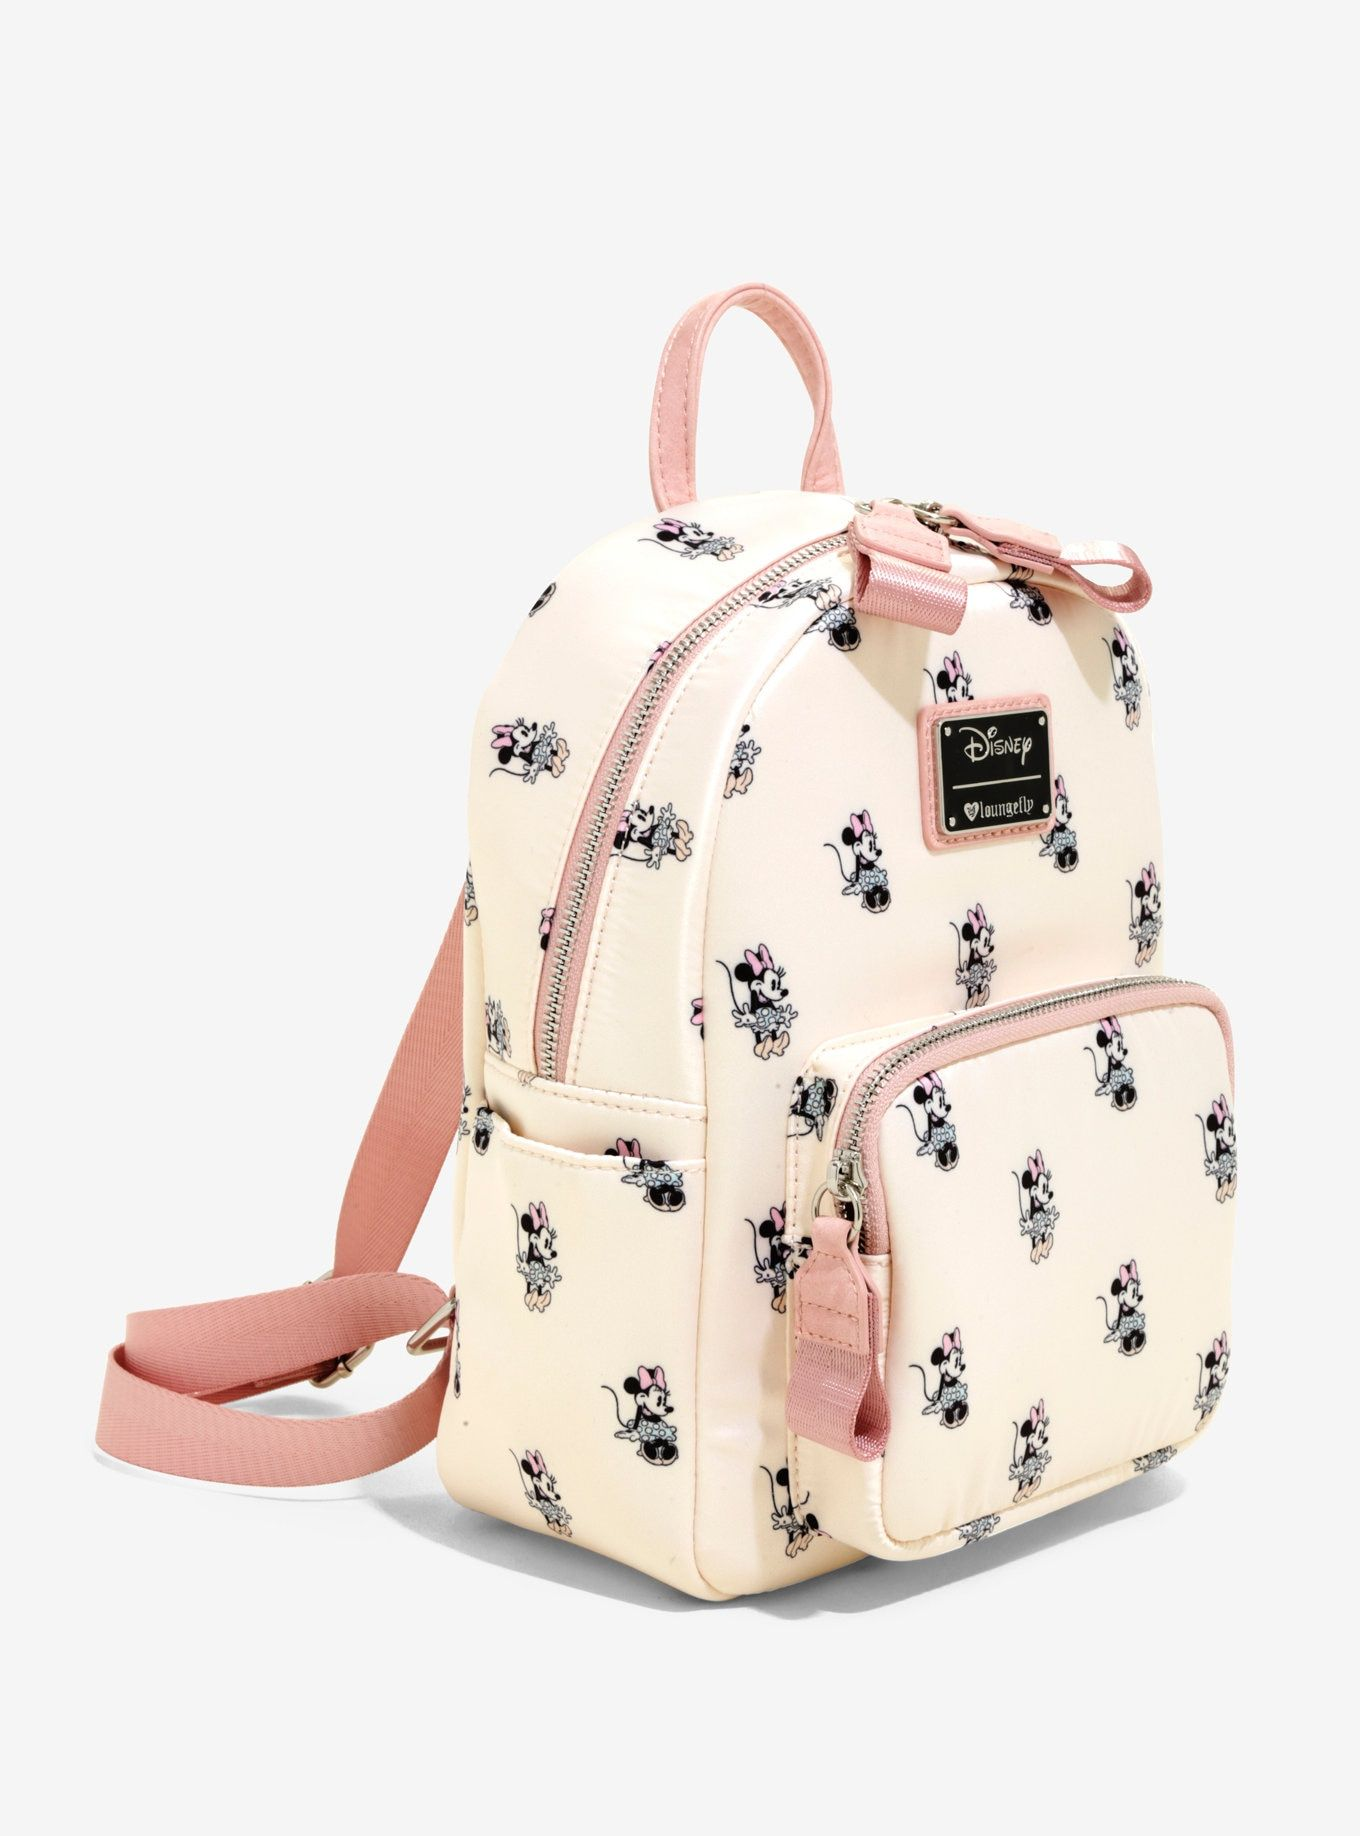 76377049f4 Loungefly Disney Minnie Mouse Satin Mini Backpack in 2019